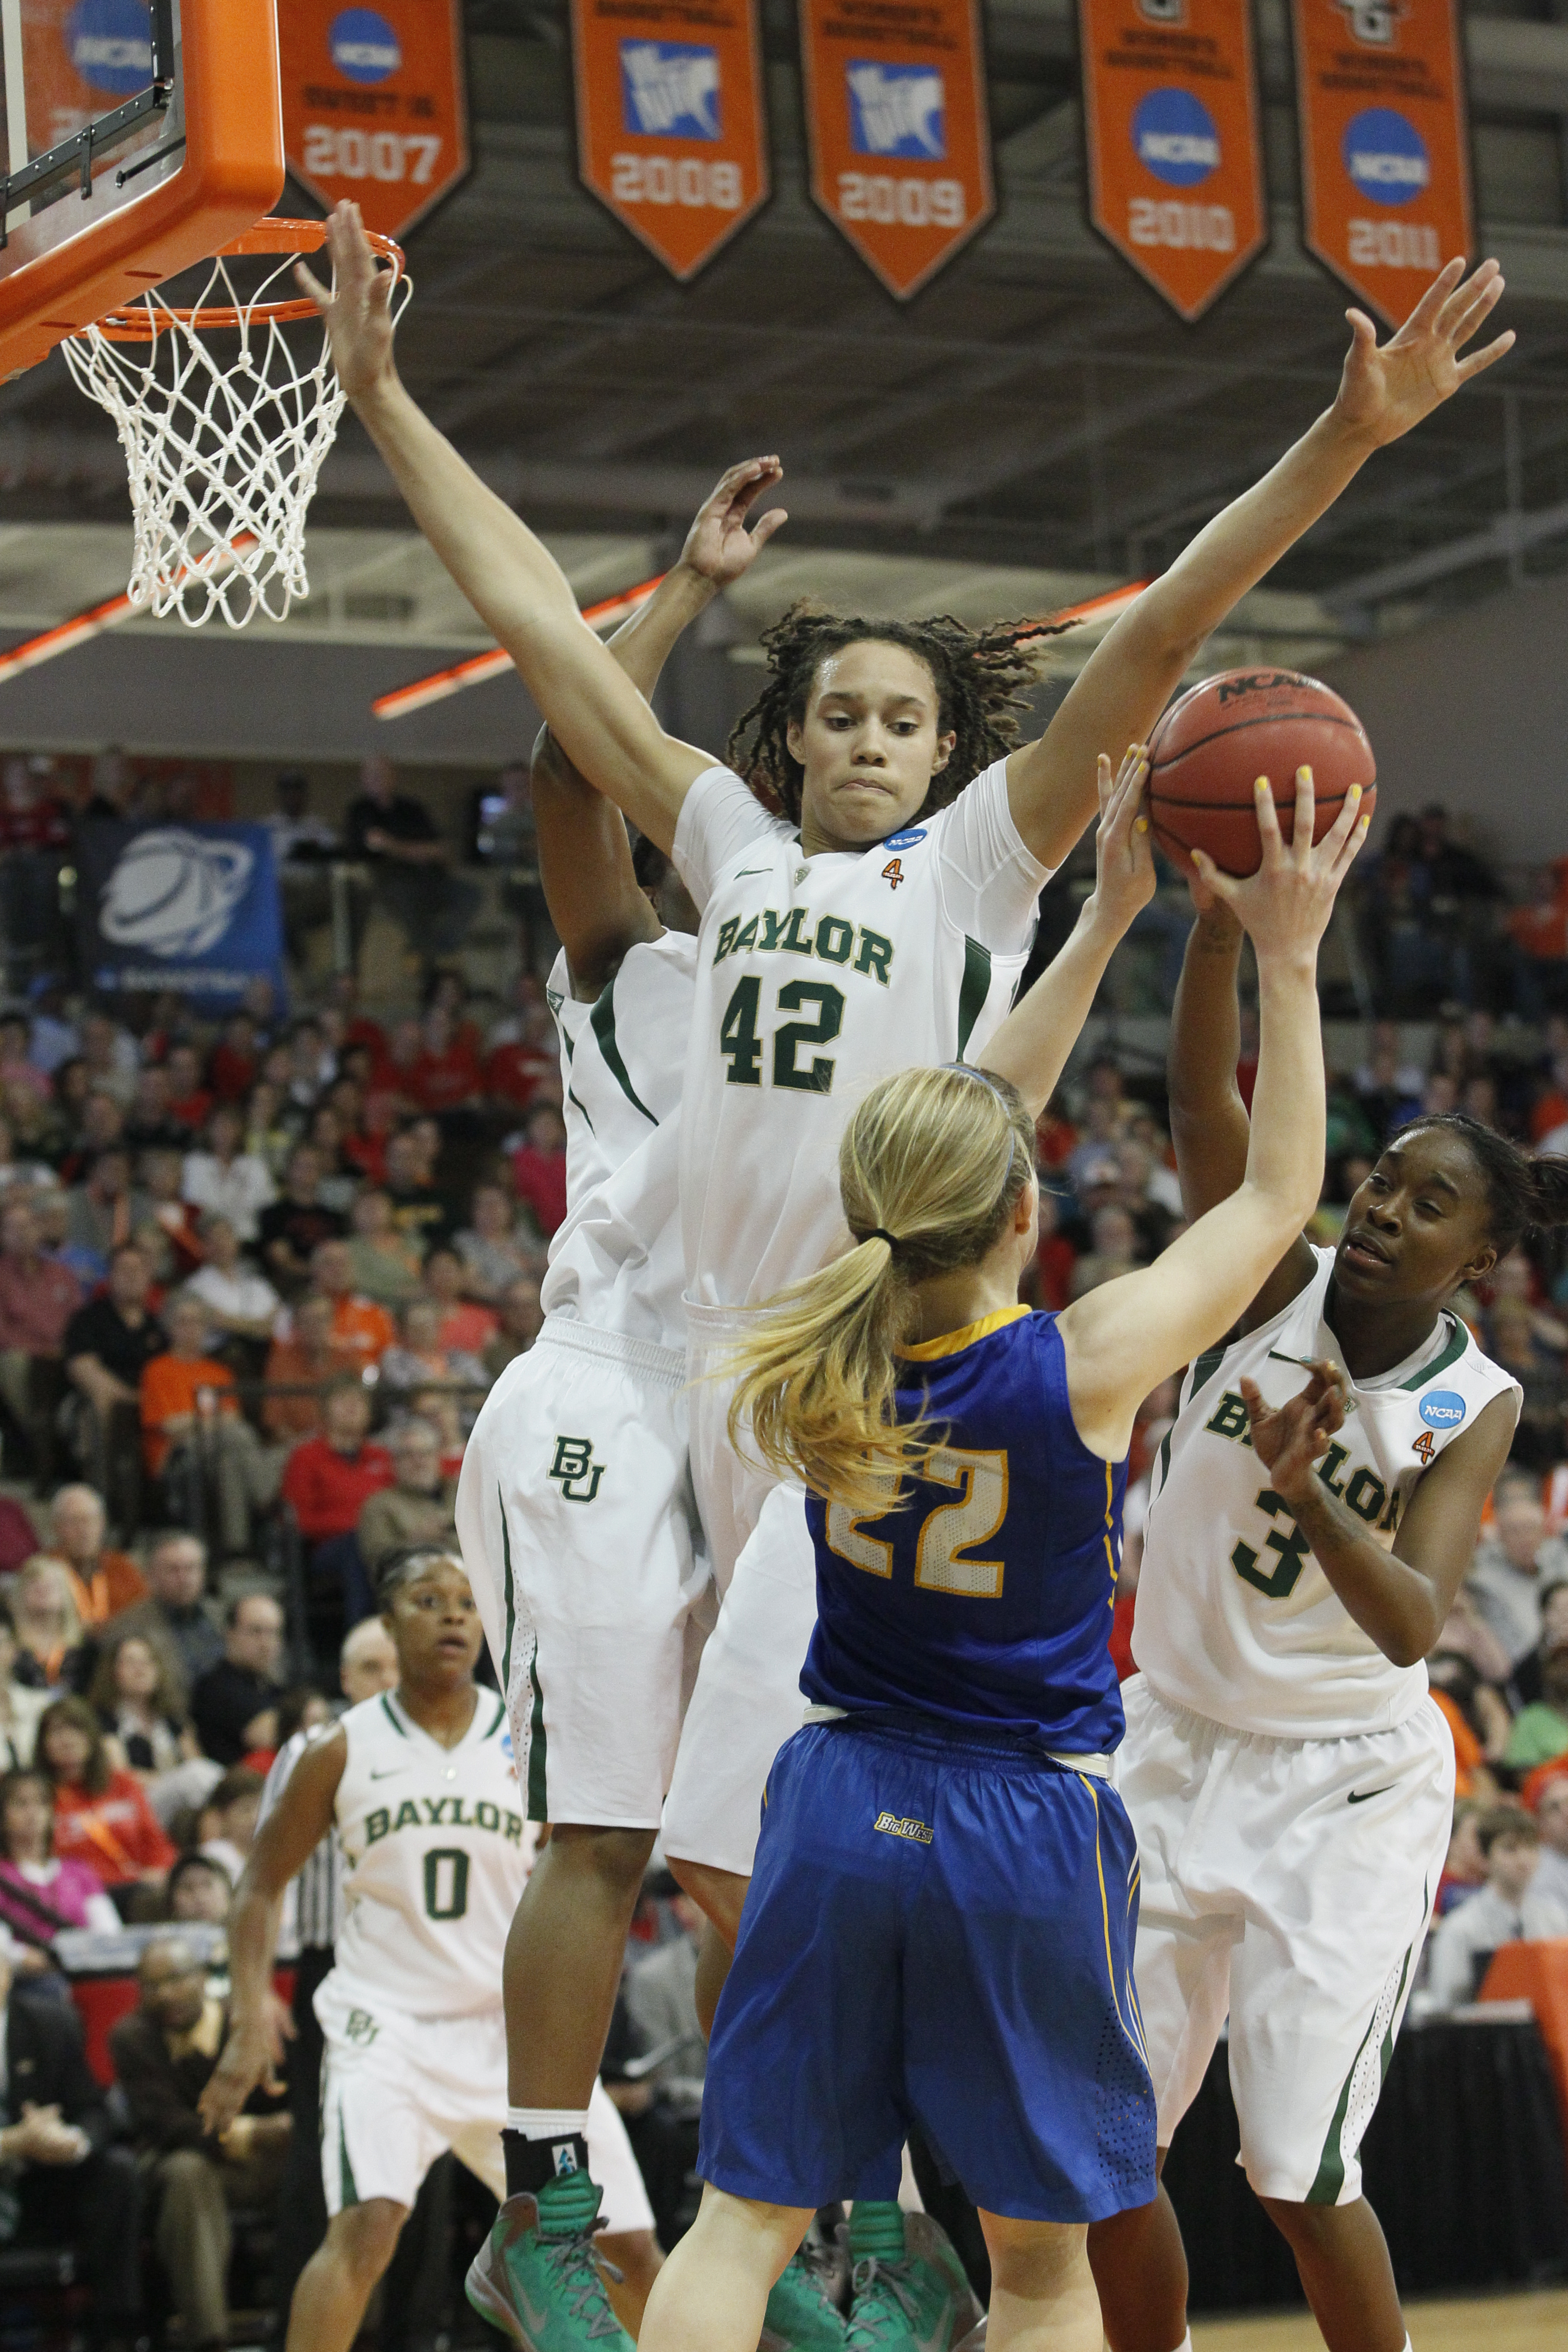 Griner No 1 Bears Roll Over Gauchos The Blade